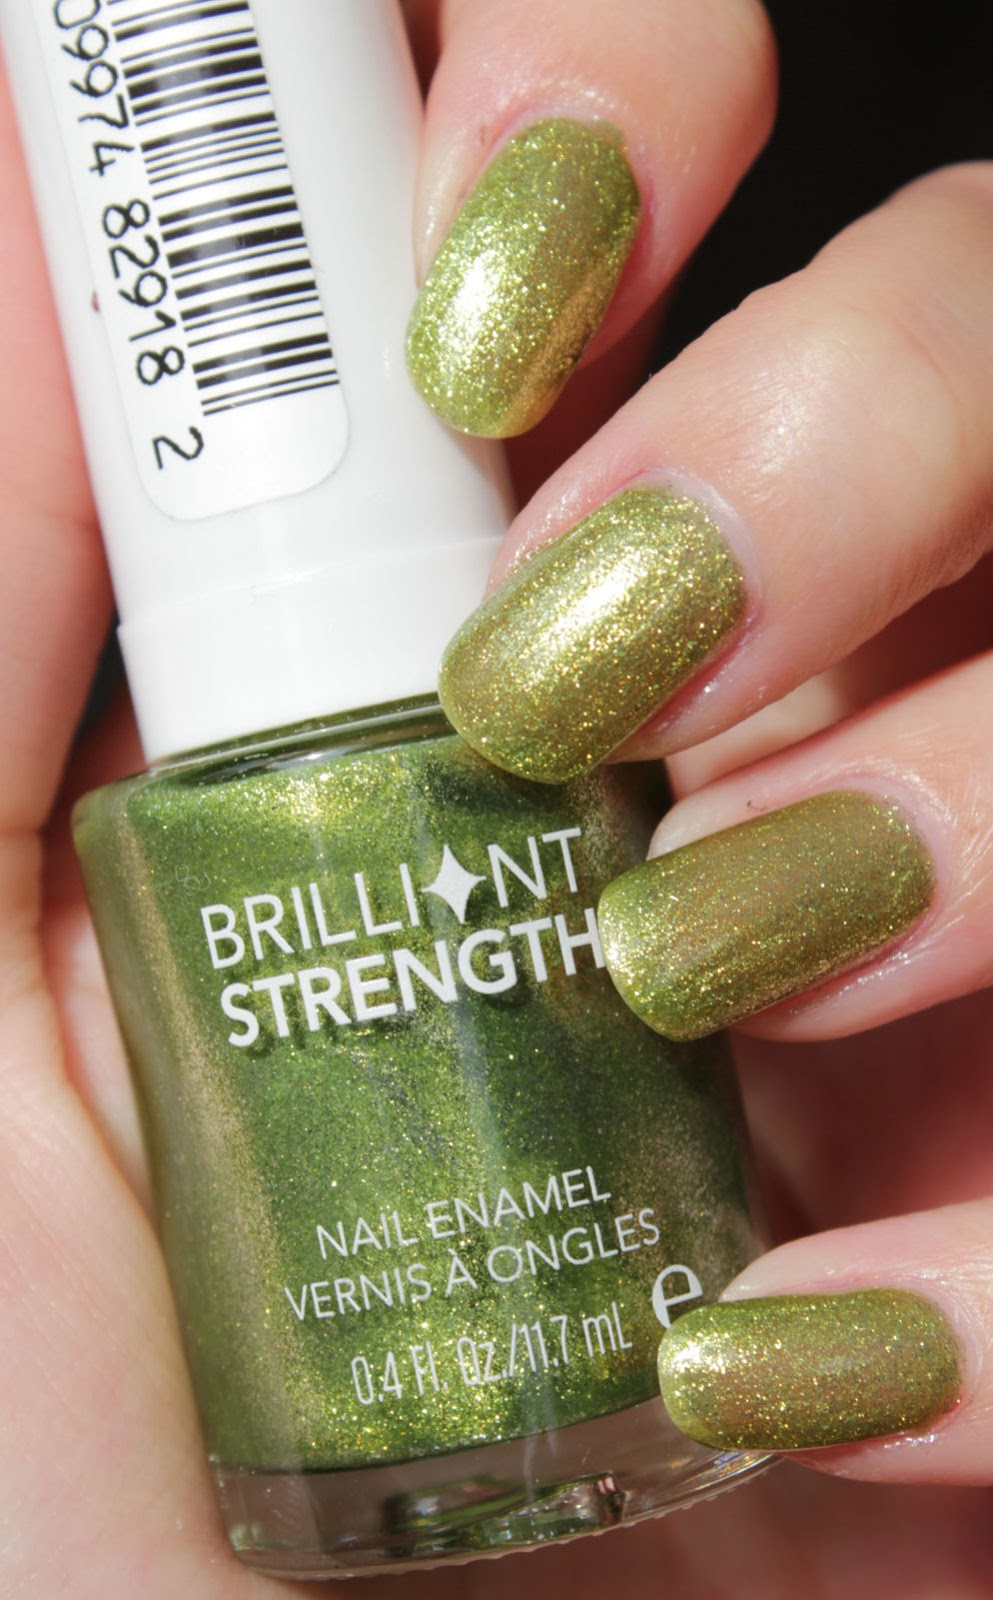 http://lacquediction.blogspot.de/2014/11/revlon-brilliant-strength-nail-enamel.html